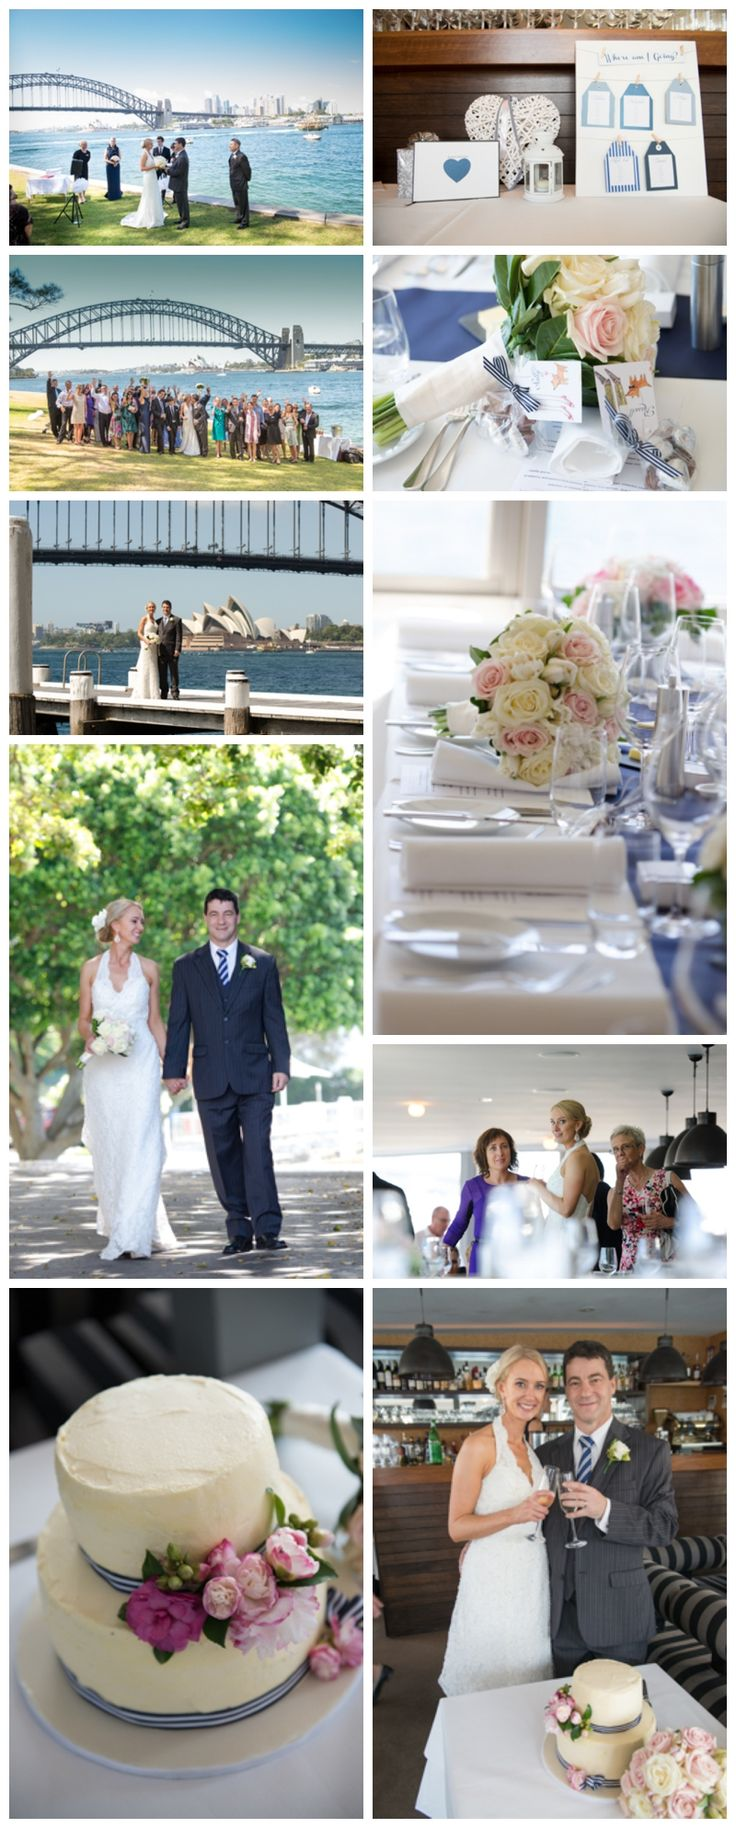 Sails Restaurant Lavender Bay Sydney - the perfect location for a wedding. Beautiful views to the Harbour Bridge and the Opera House. Set on Sydney Harbour, Sails Restaurant has exquisite menu choices to make your wedding something special